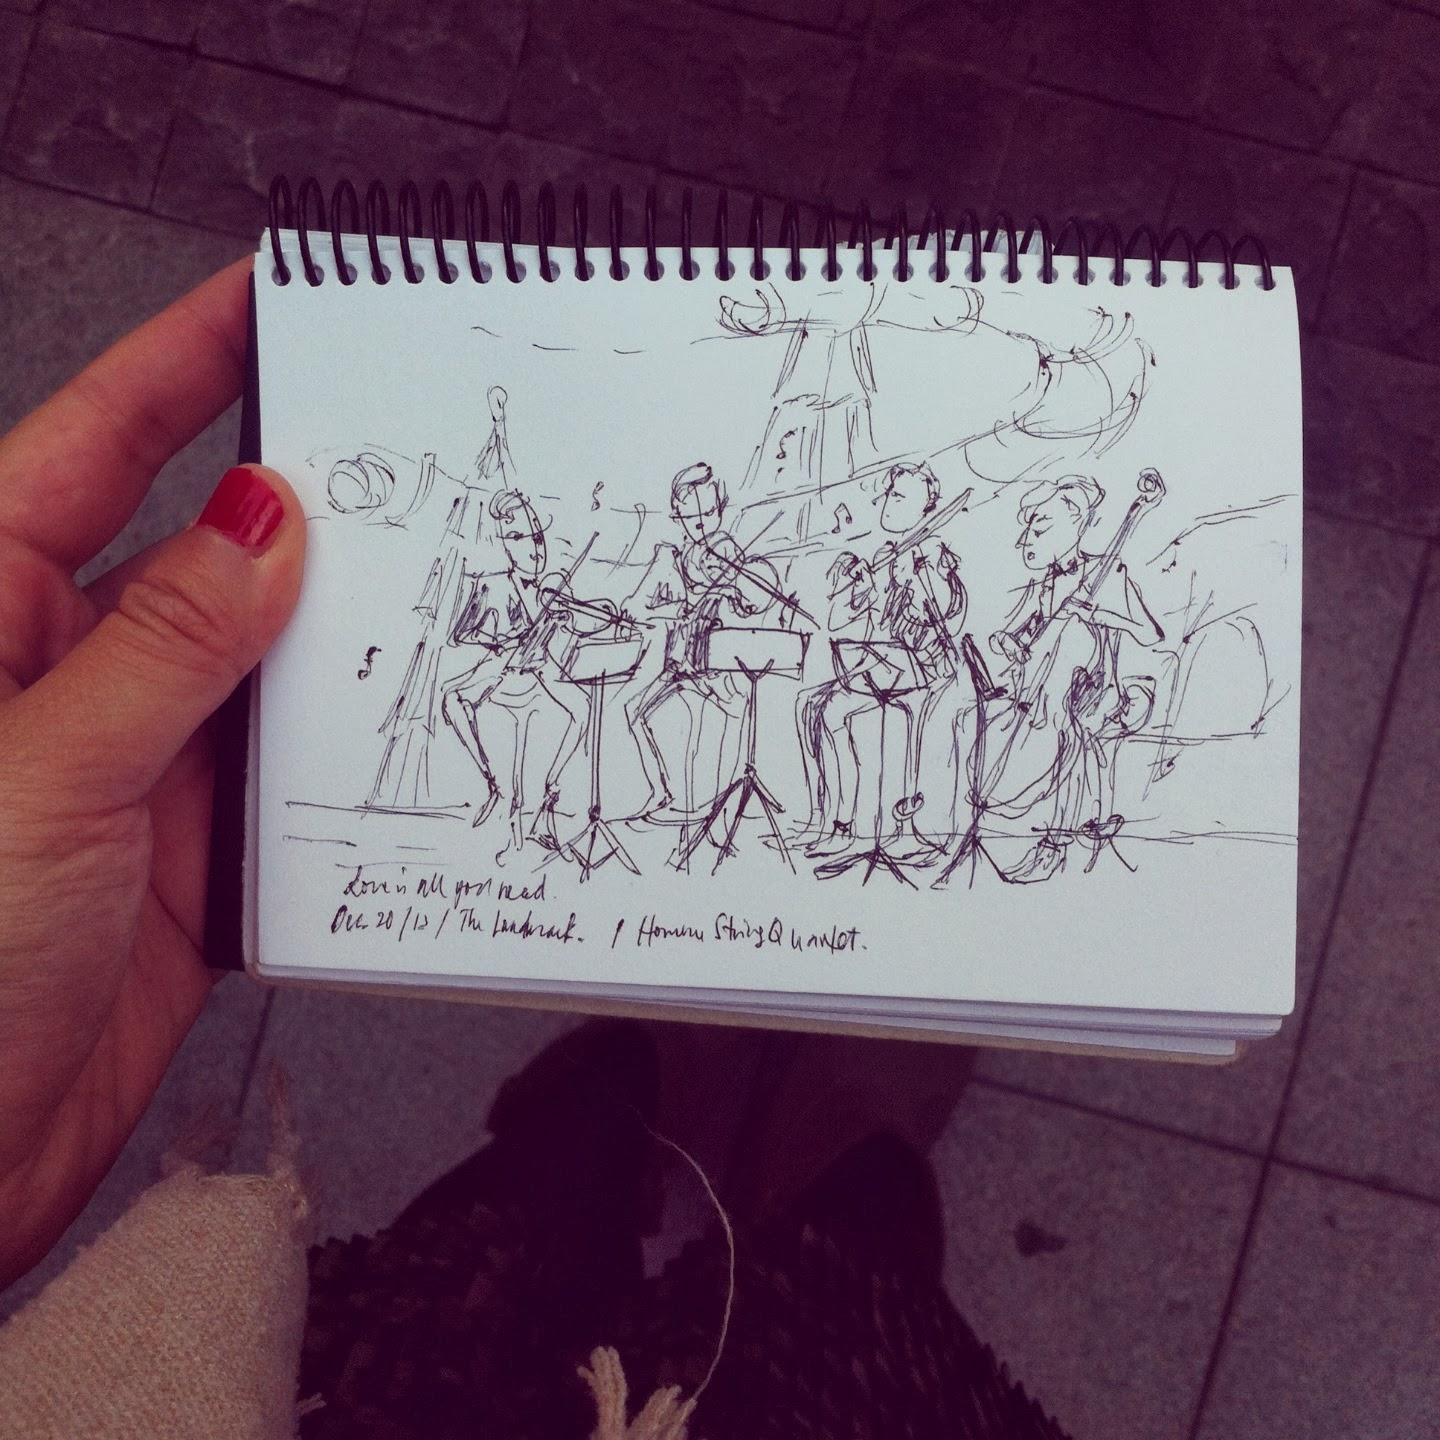 Hommes string quartet sketch at Landmark HK